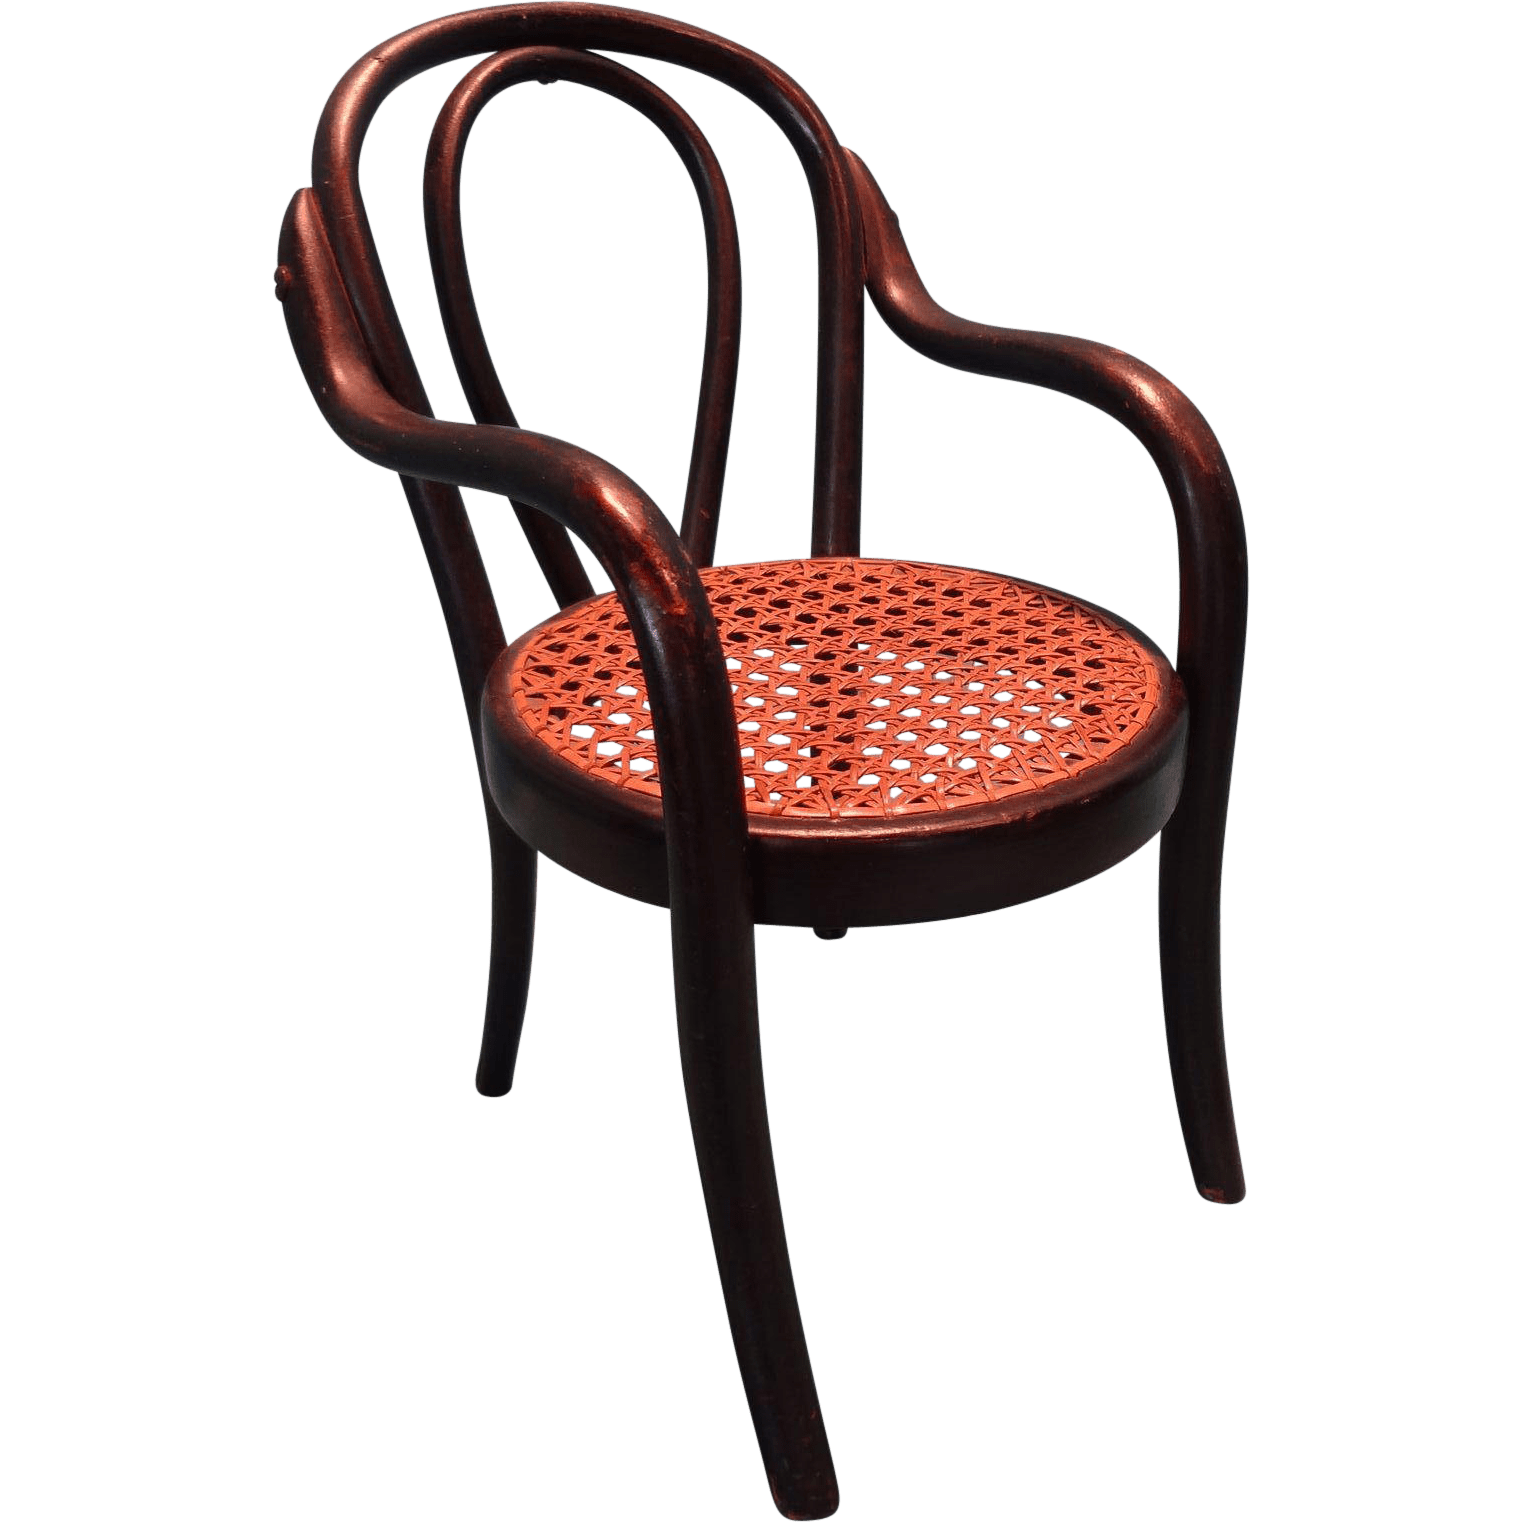 thonet chair styles fisher price potty miniature bentwood in the style and ebony